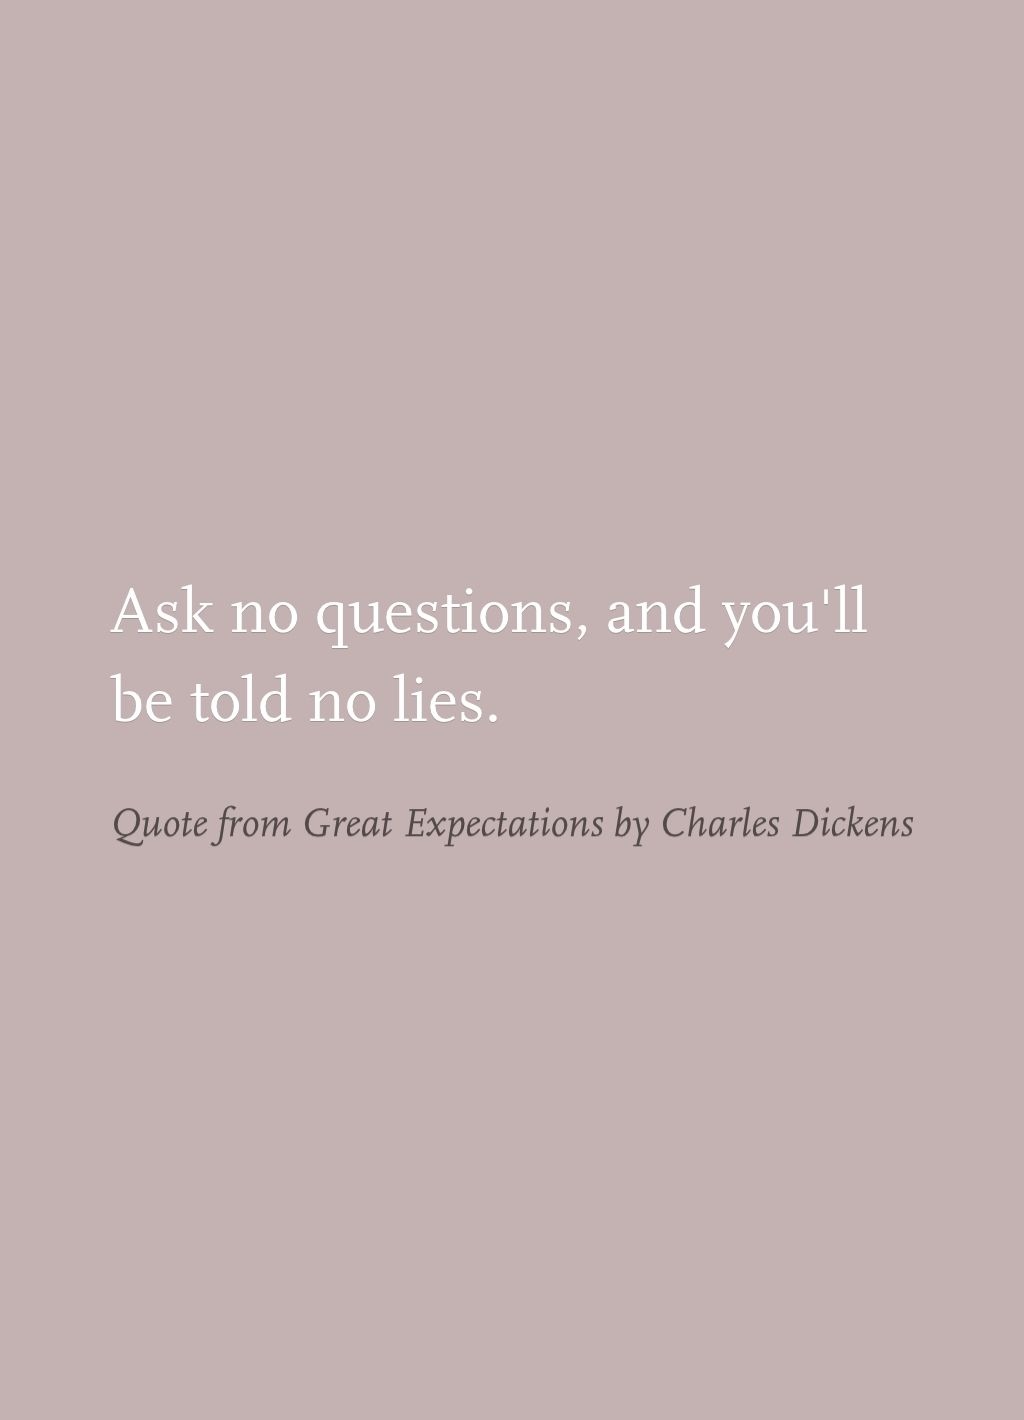 Example quote Quote from Great Expectations by Charles Dickens Said by Magwich to Pip